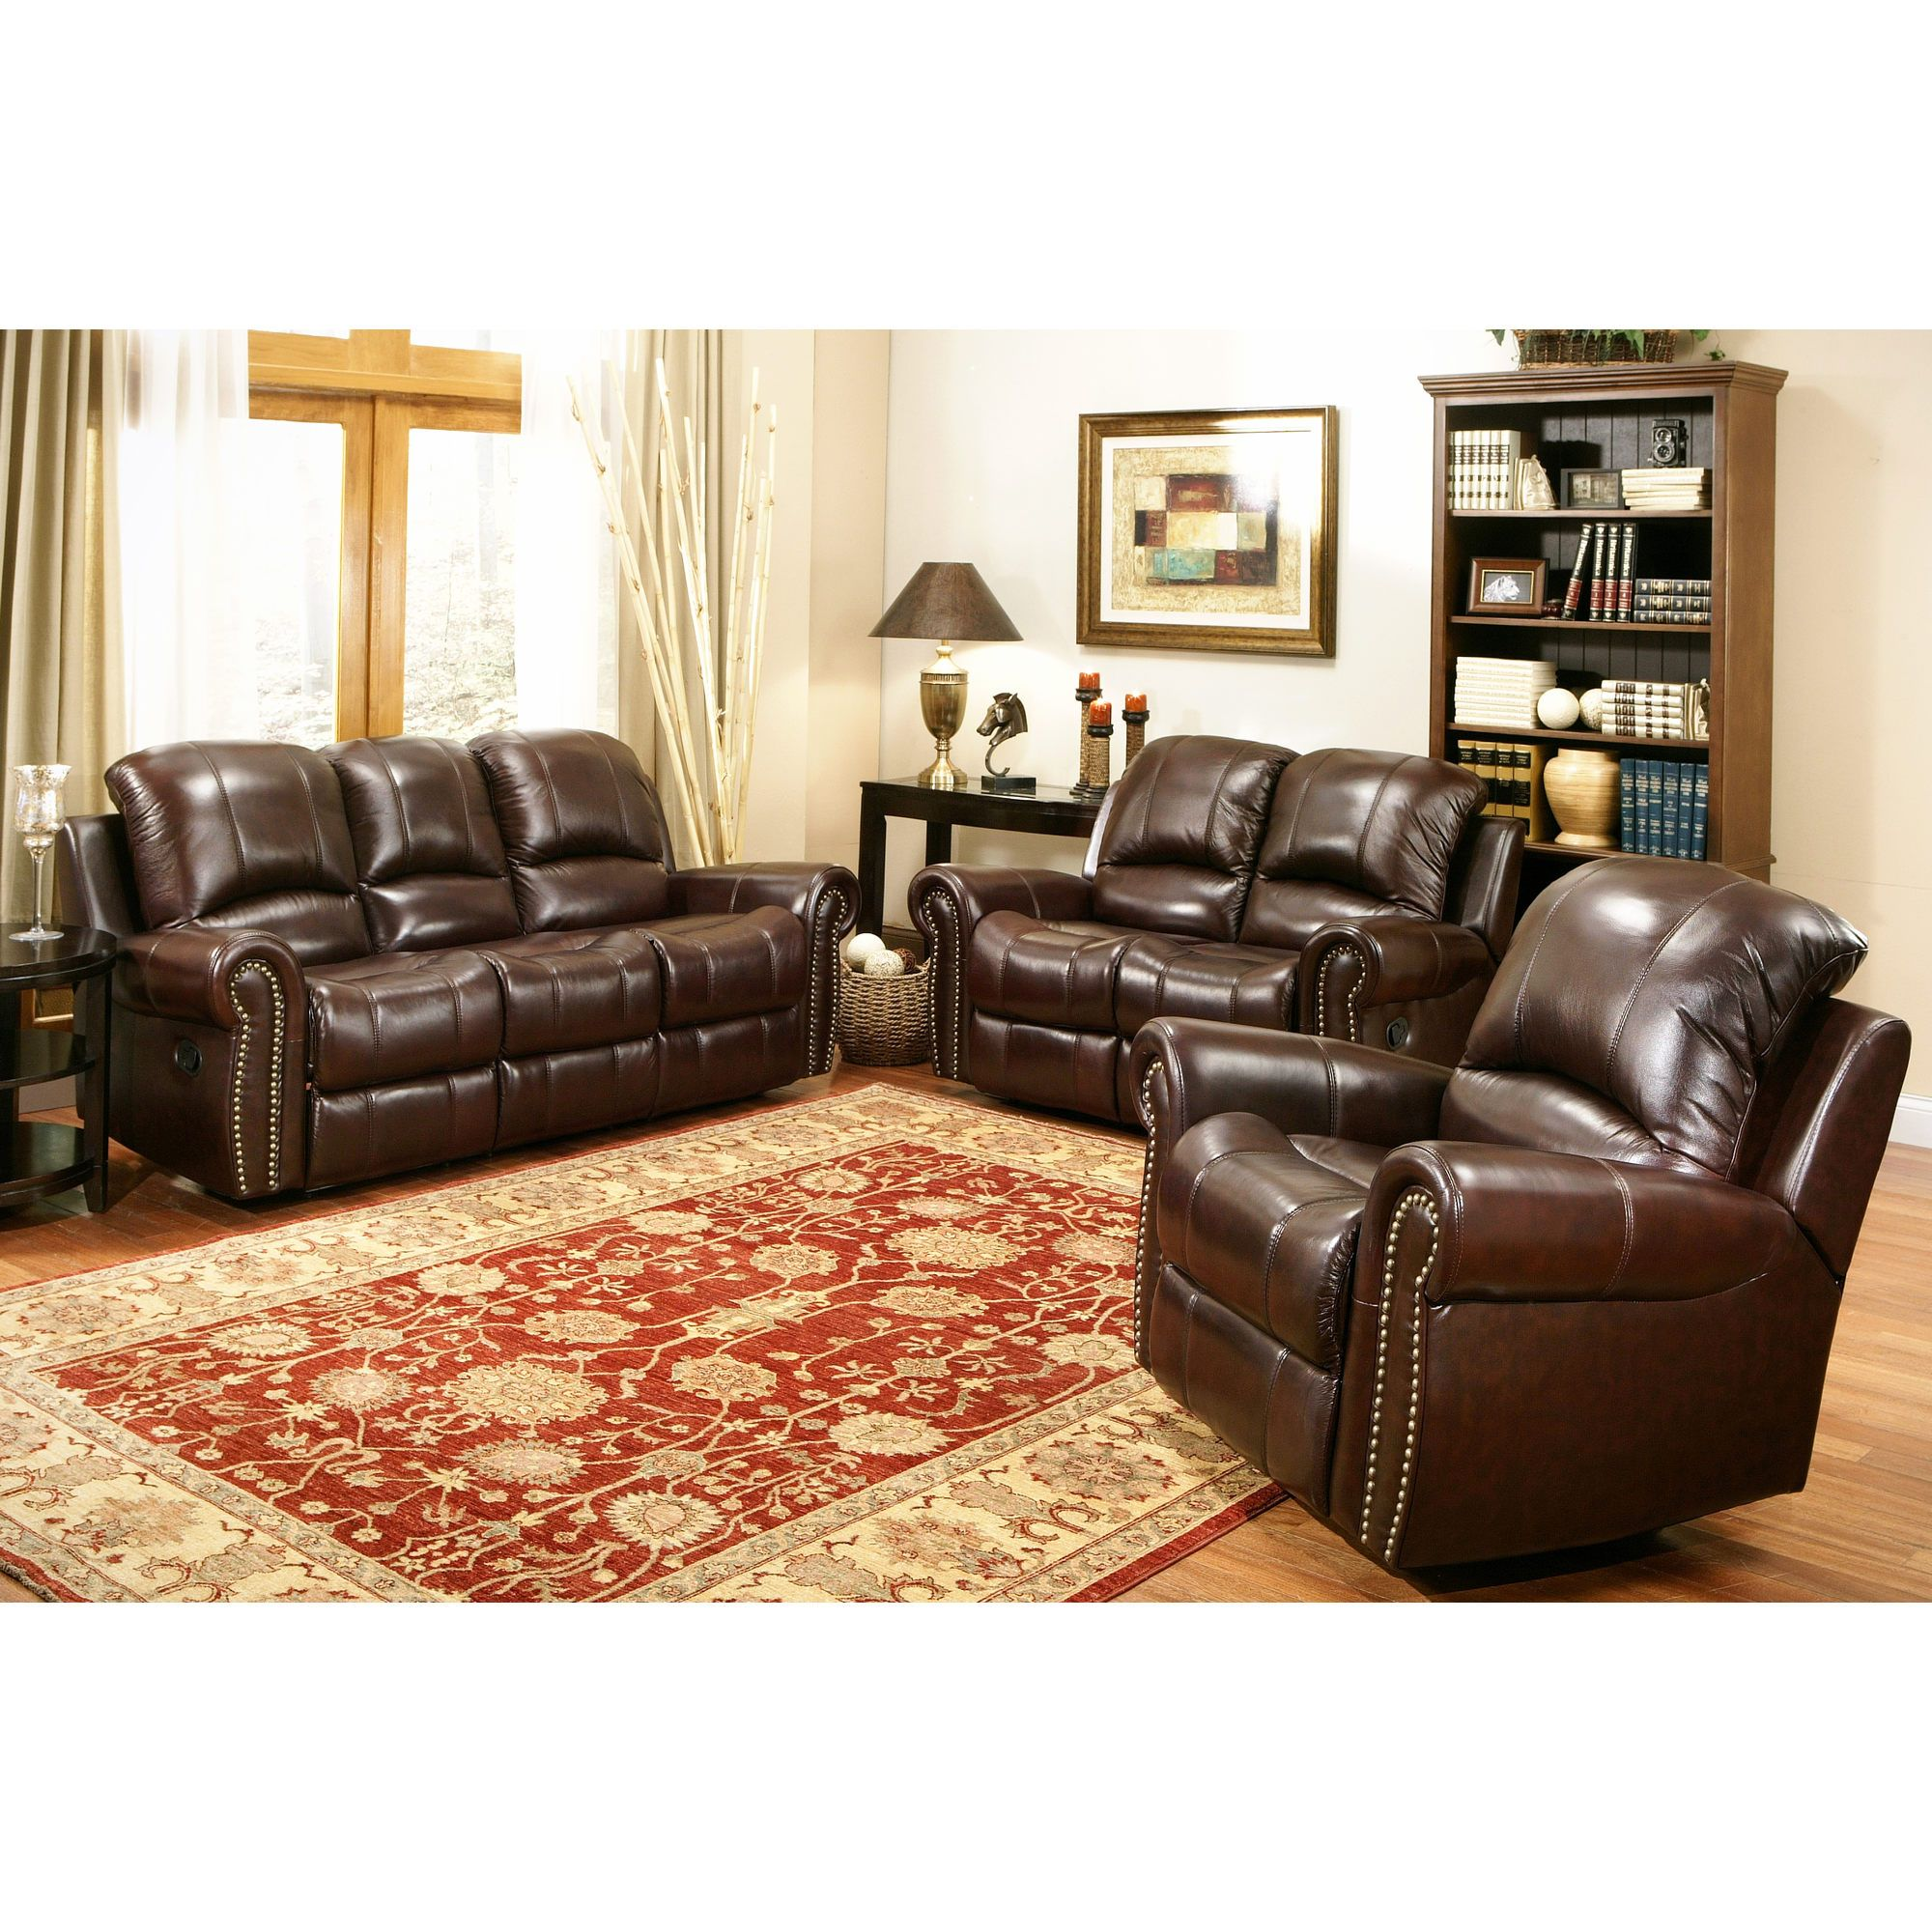 Great Abbyson Living Berkshire 3 Piece Leather Reclining Furniture Set   Burgundy